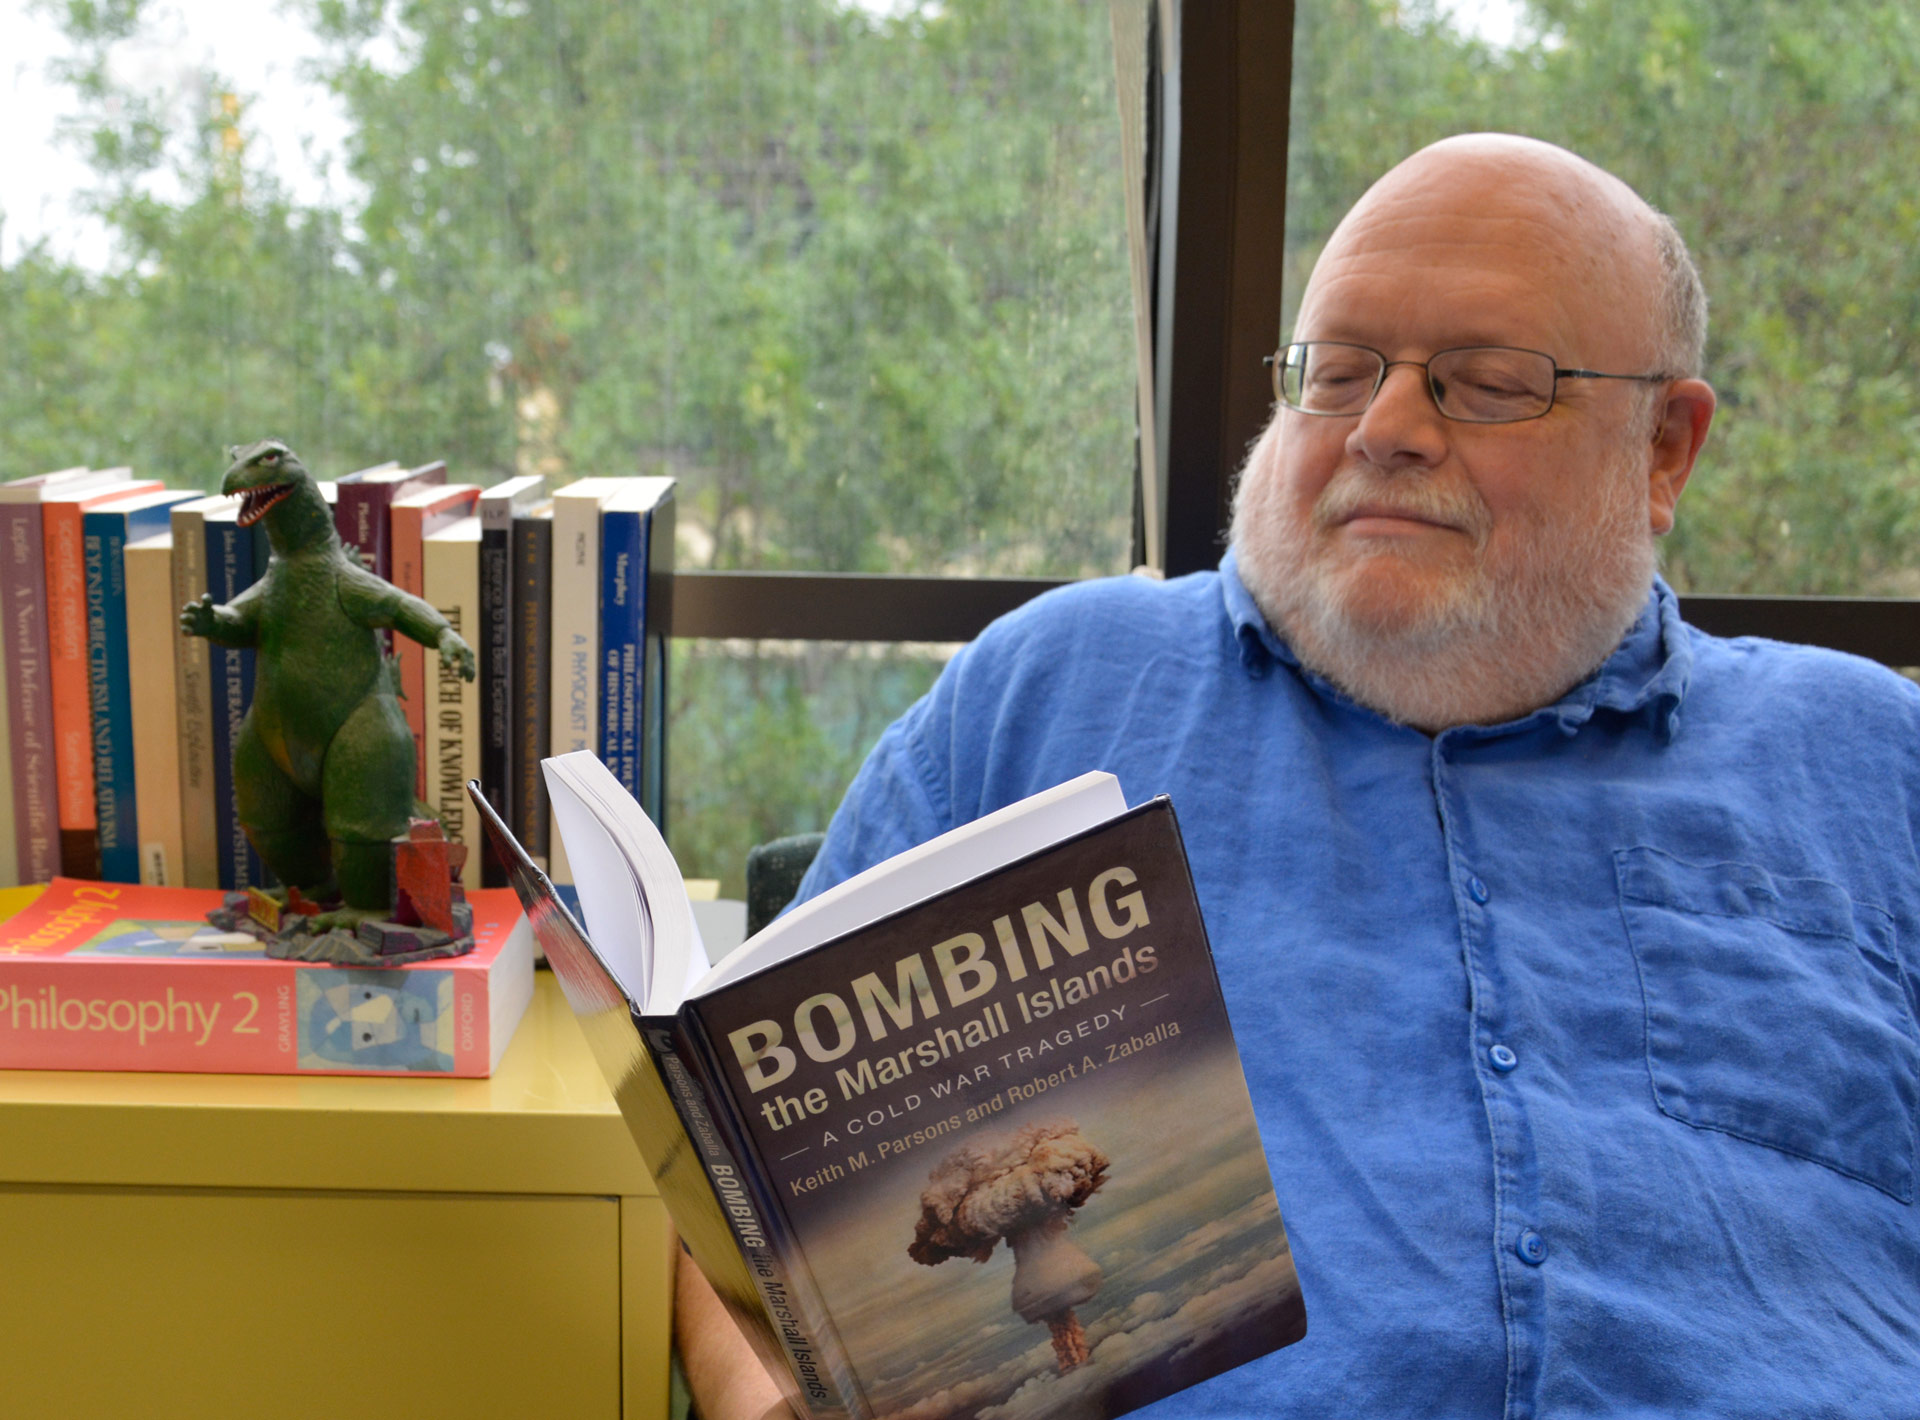 UHCL professor's book chronicles tragedy of Cold War nuke tests